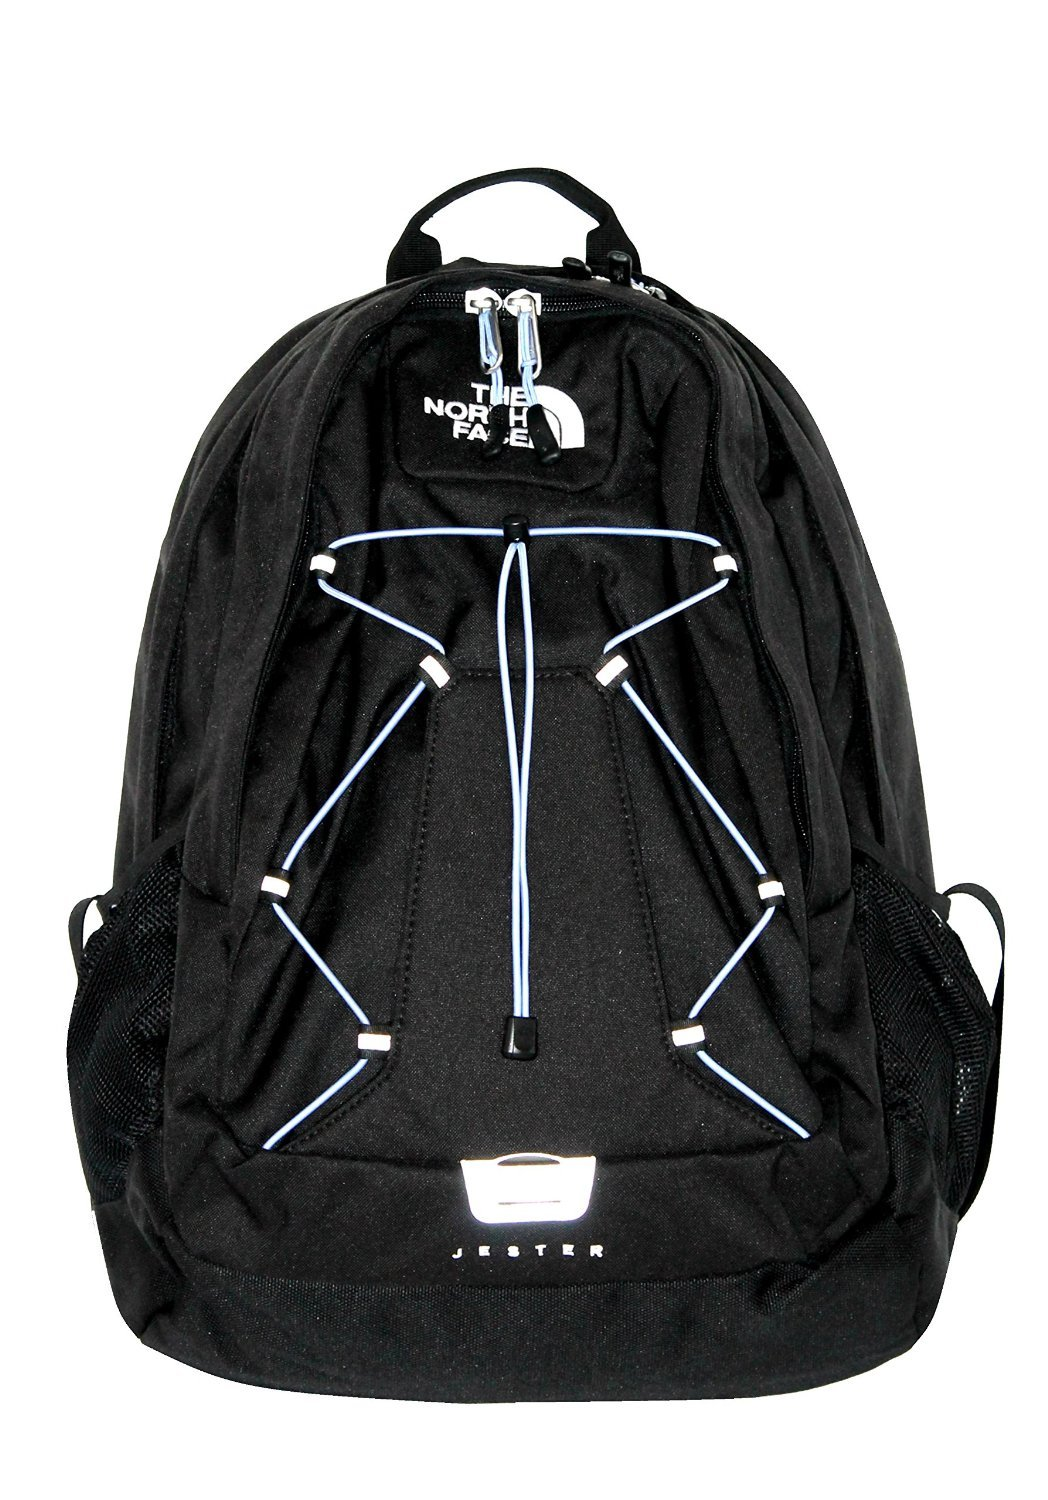 the north face backpack jester sale